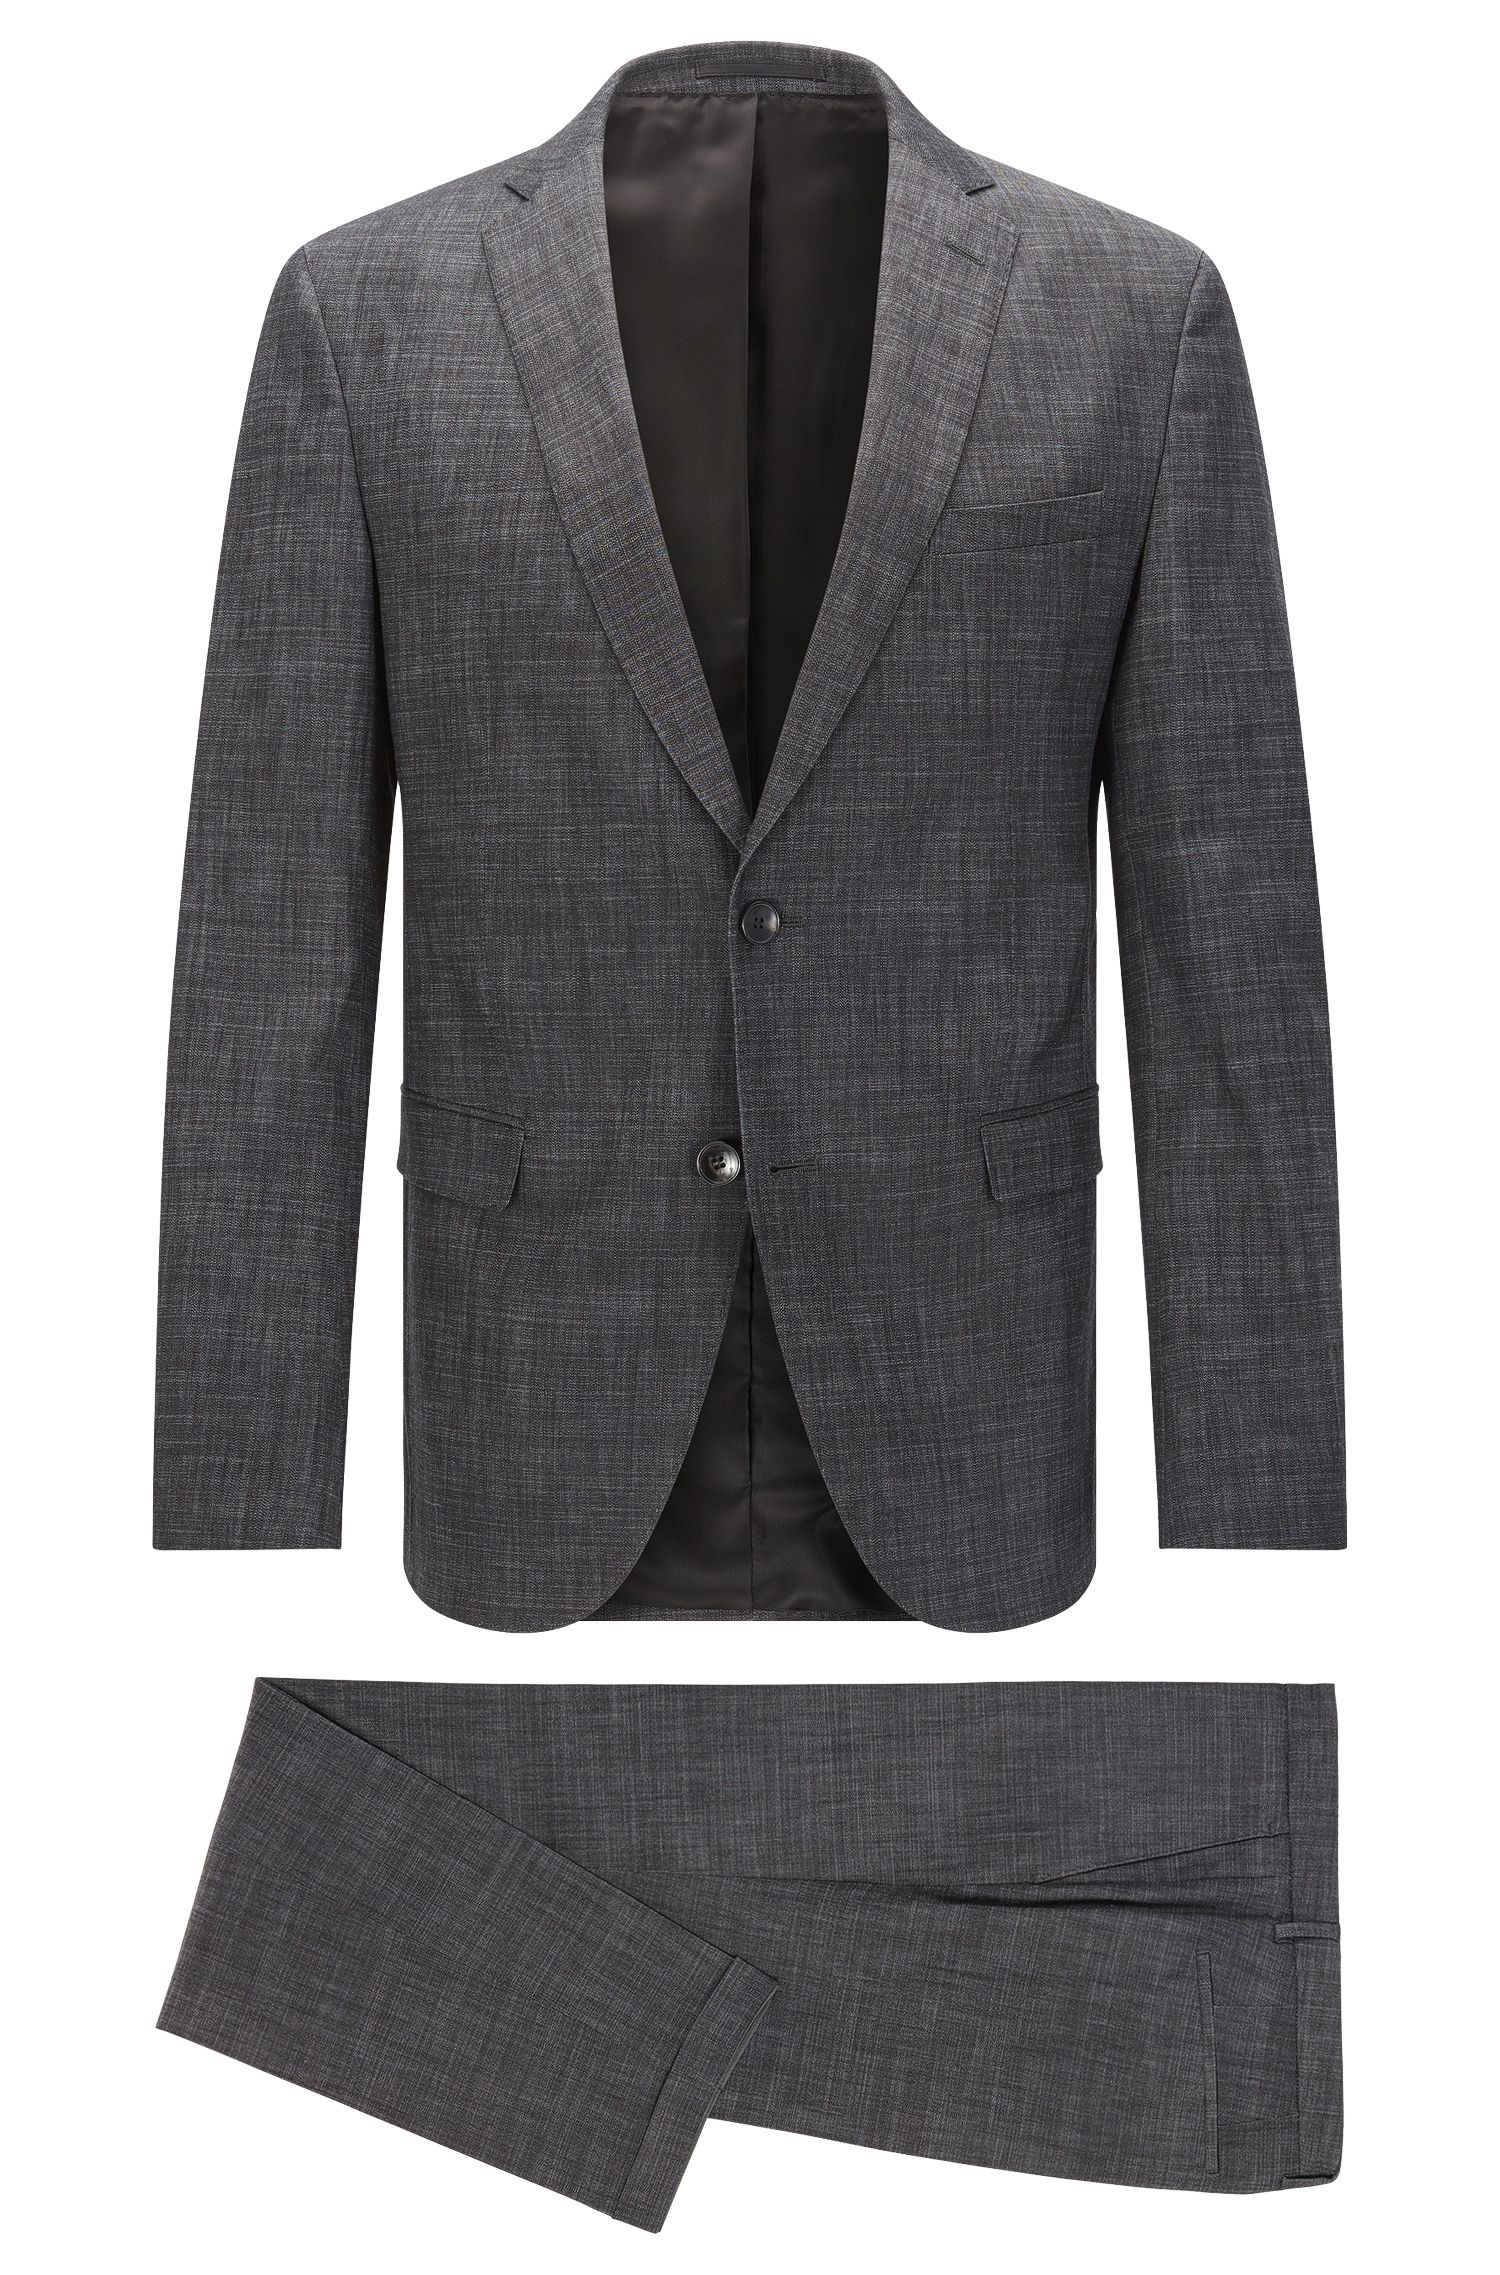 'Reyno/Wave' | Extra Slim Fit, Stretch Cotton Blend Suit